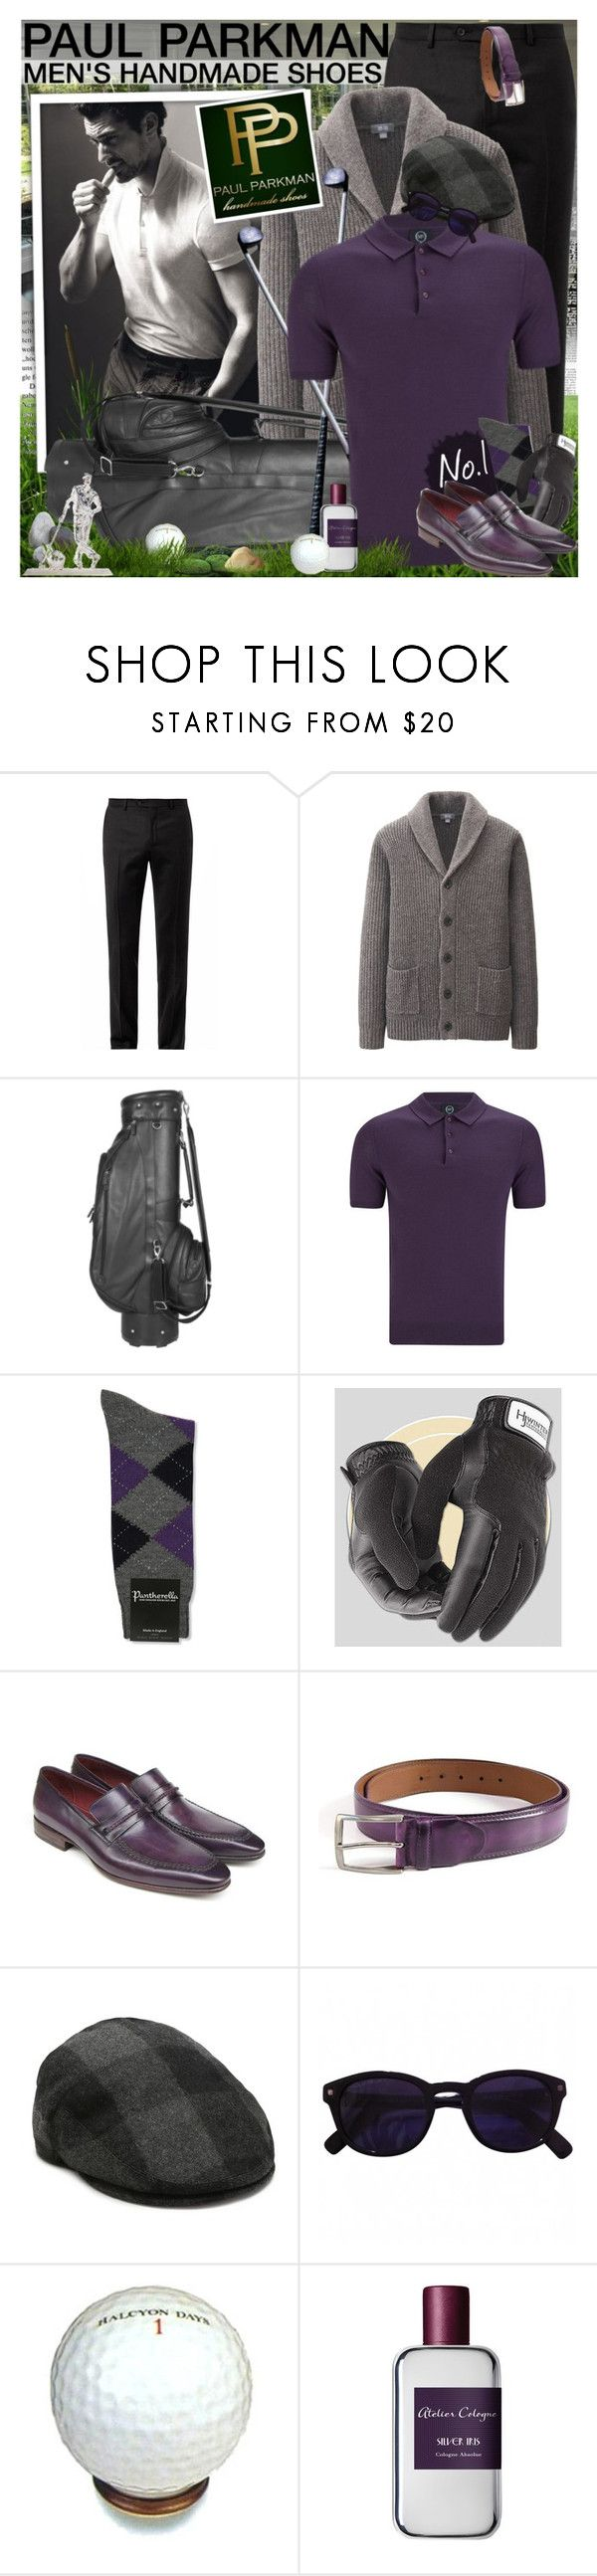 """The art of handmade shoes & belts - PAUL PARKMAN"" by vn1ta ❤ liked on Polyvore featuring Lanvin, Uniqlo, McQ by Alexander McQueen, Pantherella, Aston Grey, Dsquared2, Halcyon Days, Atelier Cologne and Yael & Tal"